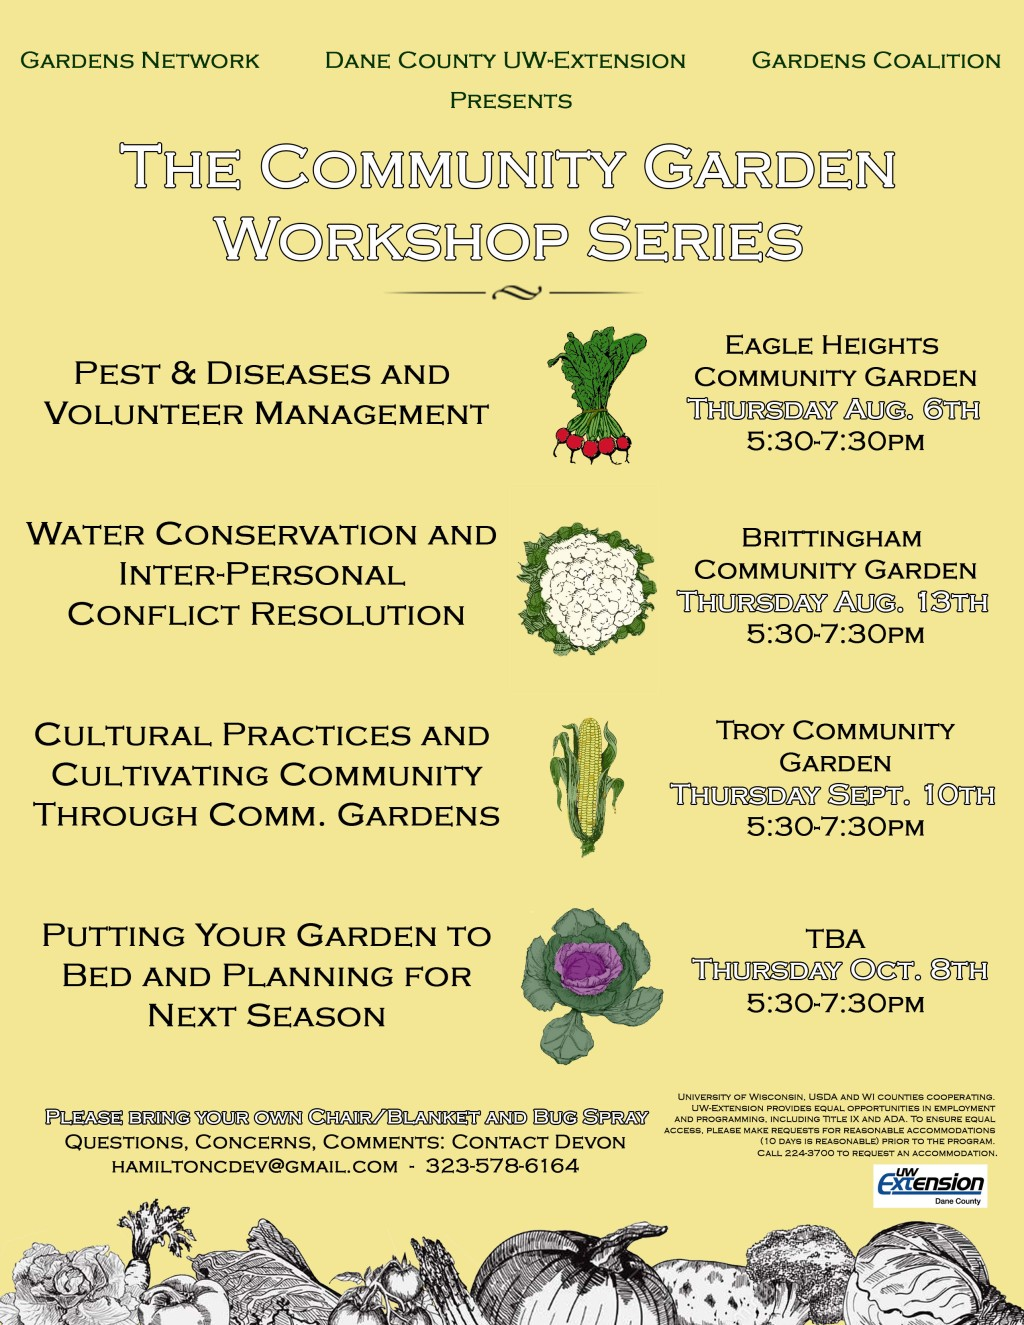 The Community Garden Workshop Series Flyer